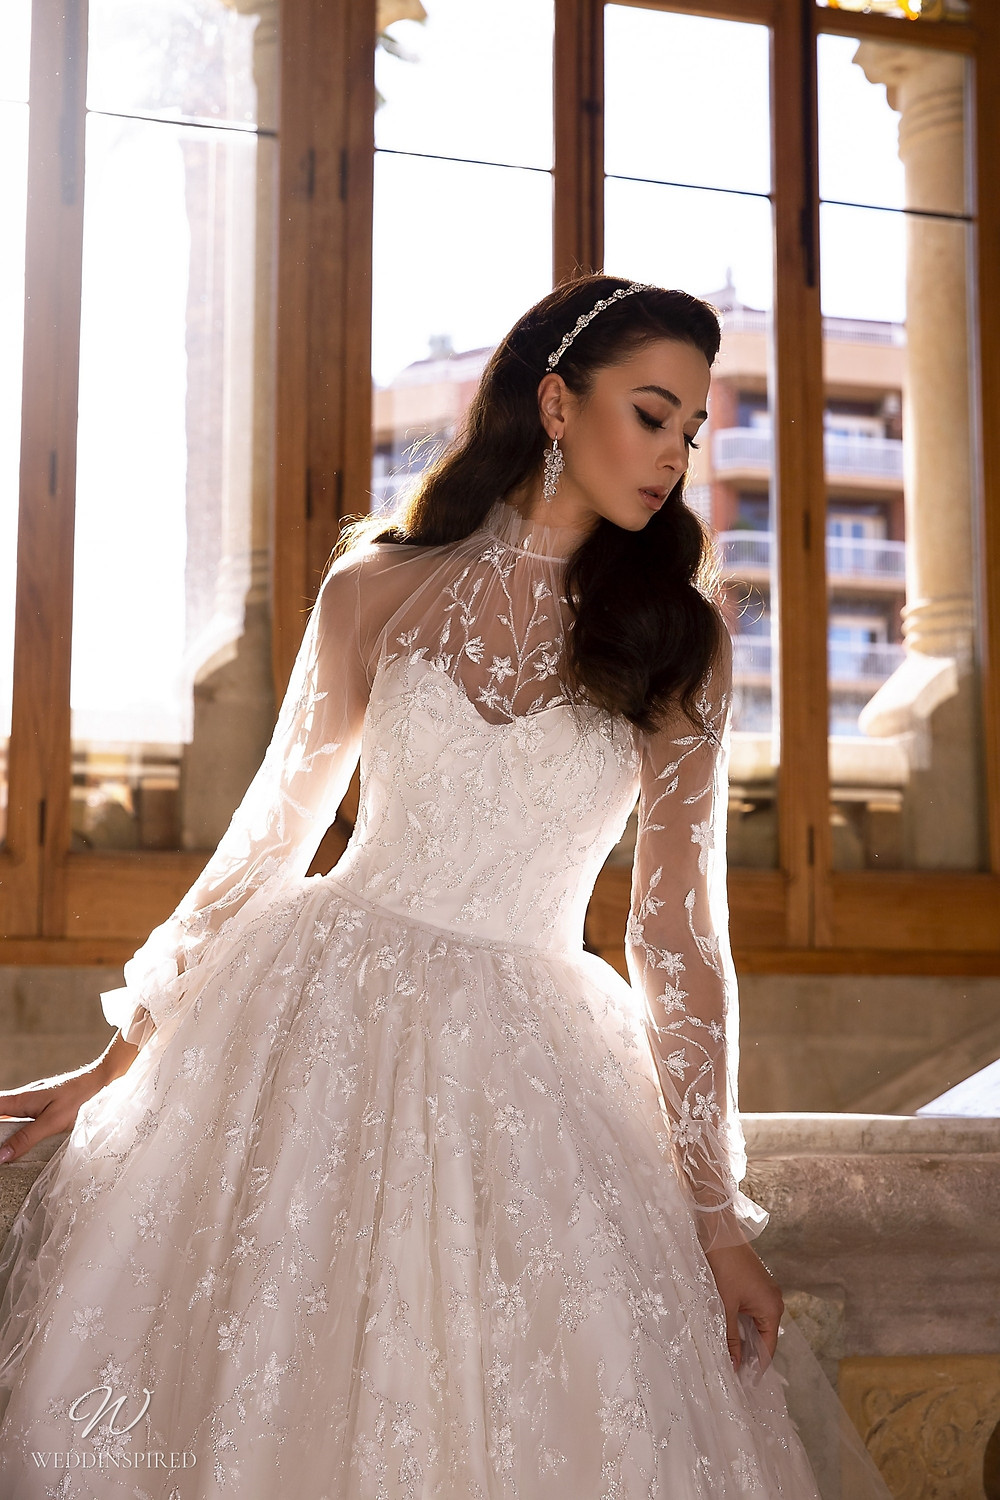 A Maks Mariano princess ball gown wedding dress with long sleeves and an illusion top